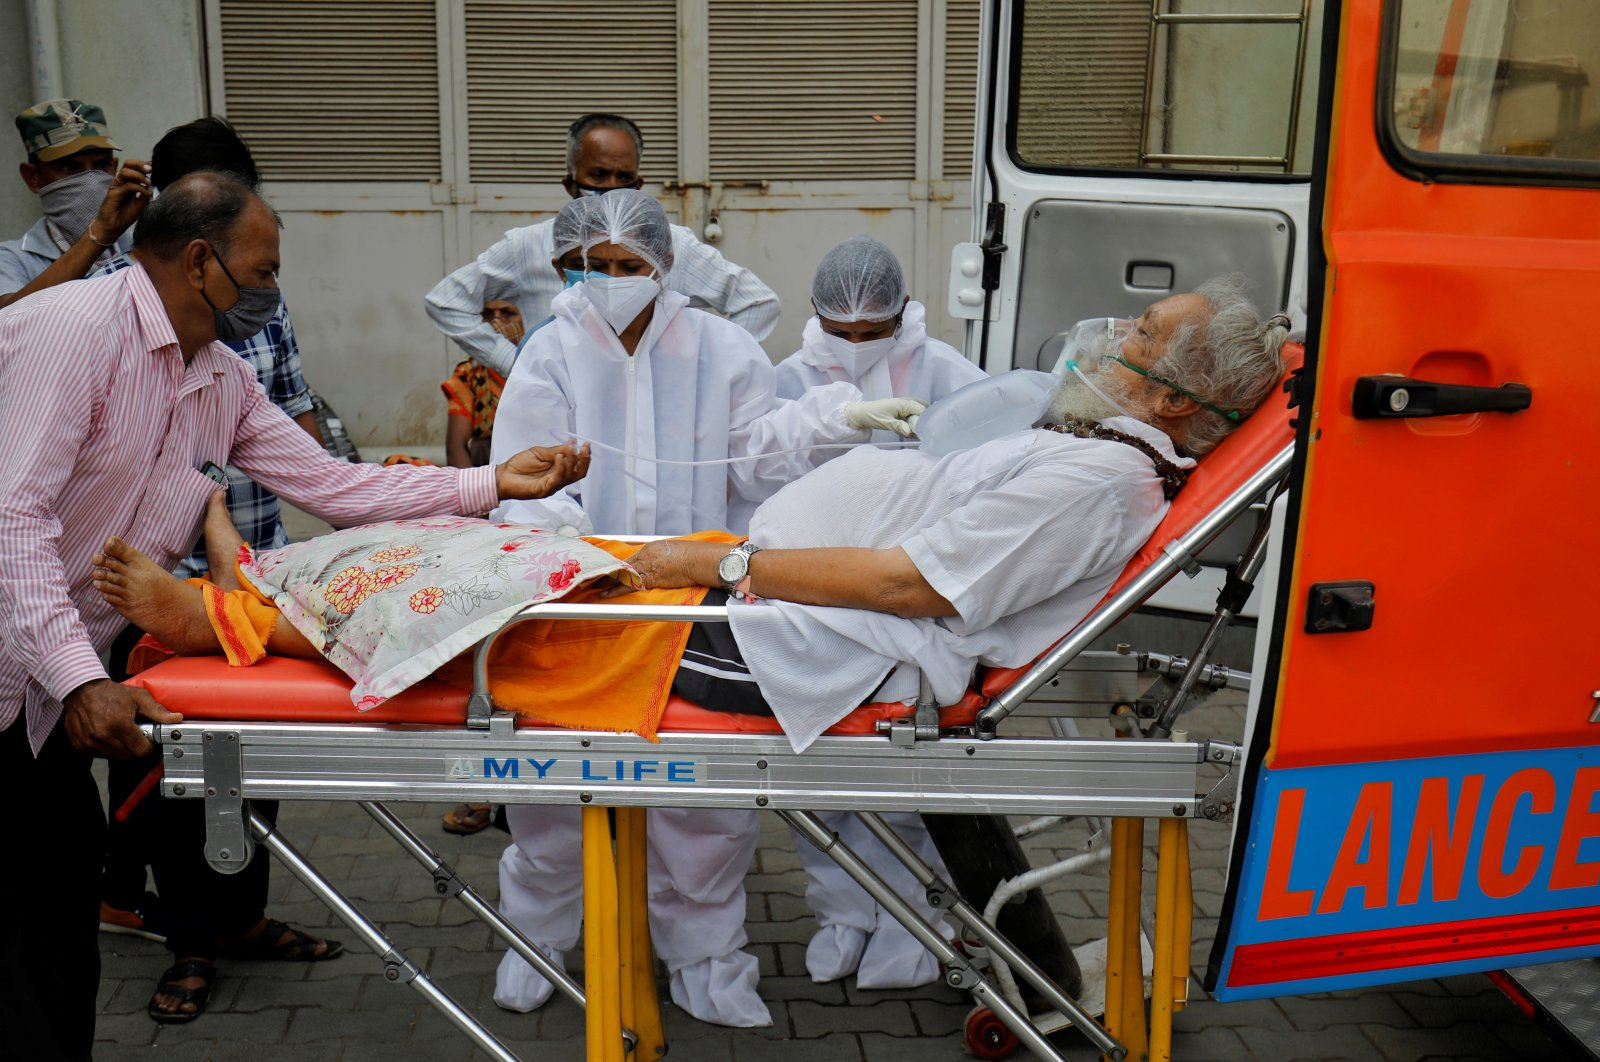 A patient wearing an oxygen mask is wheeled inside a COVID-19 hospital for treatment amid the spread of the coronavirus in Ahmedabad, India, April 26, 2021. (Amit Dave via REUTERS)